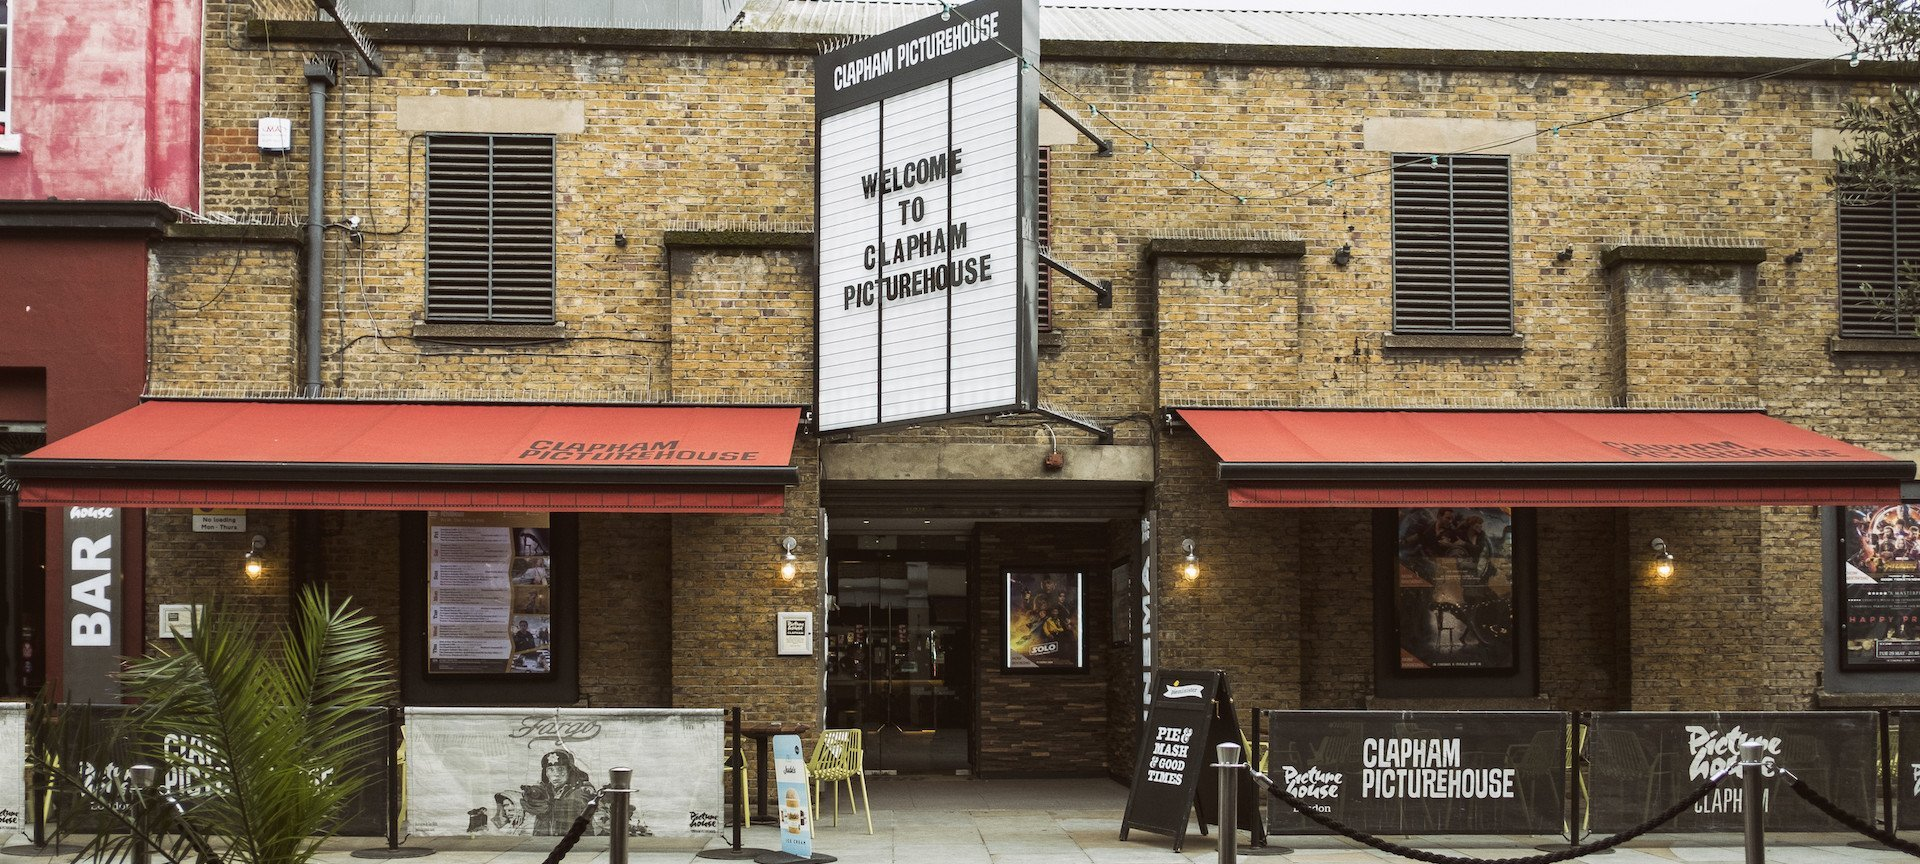 Welcome to <br>Clapham Picturehouse